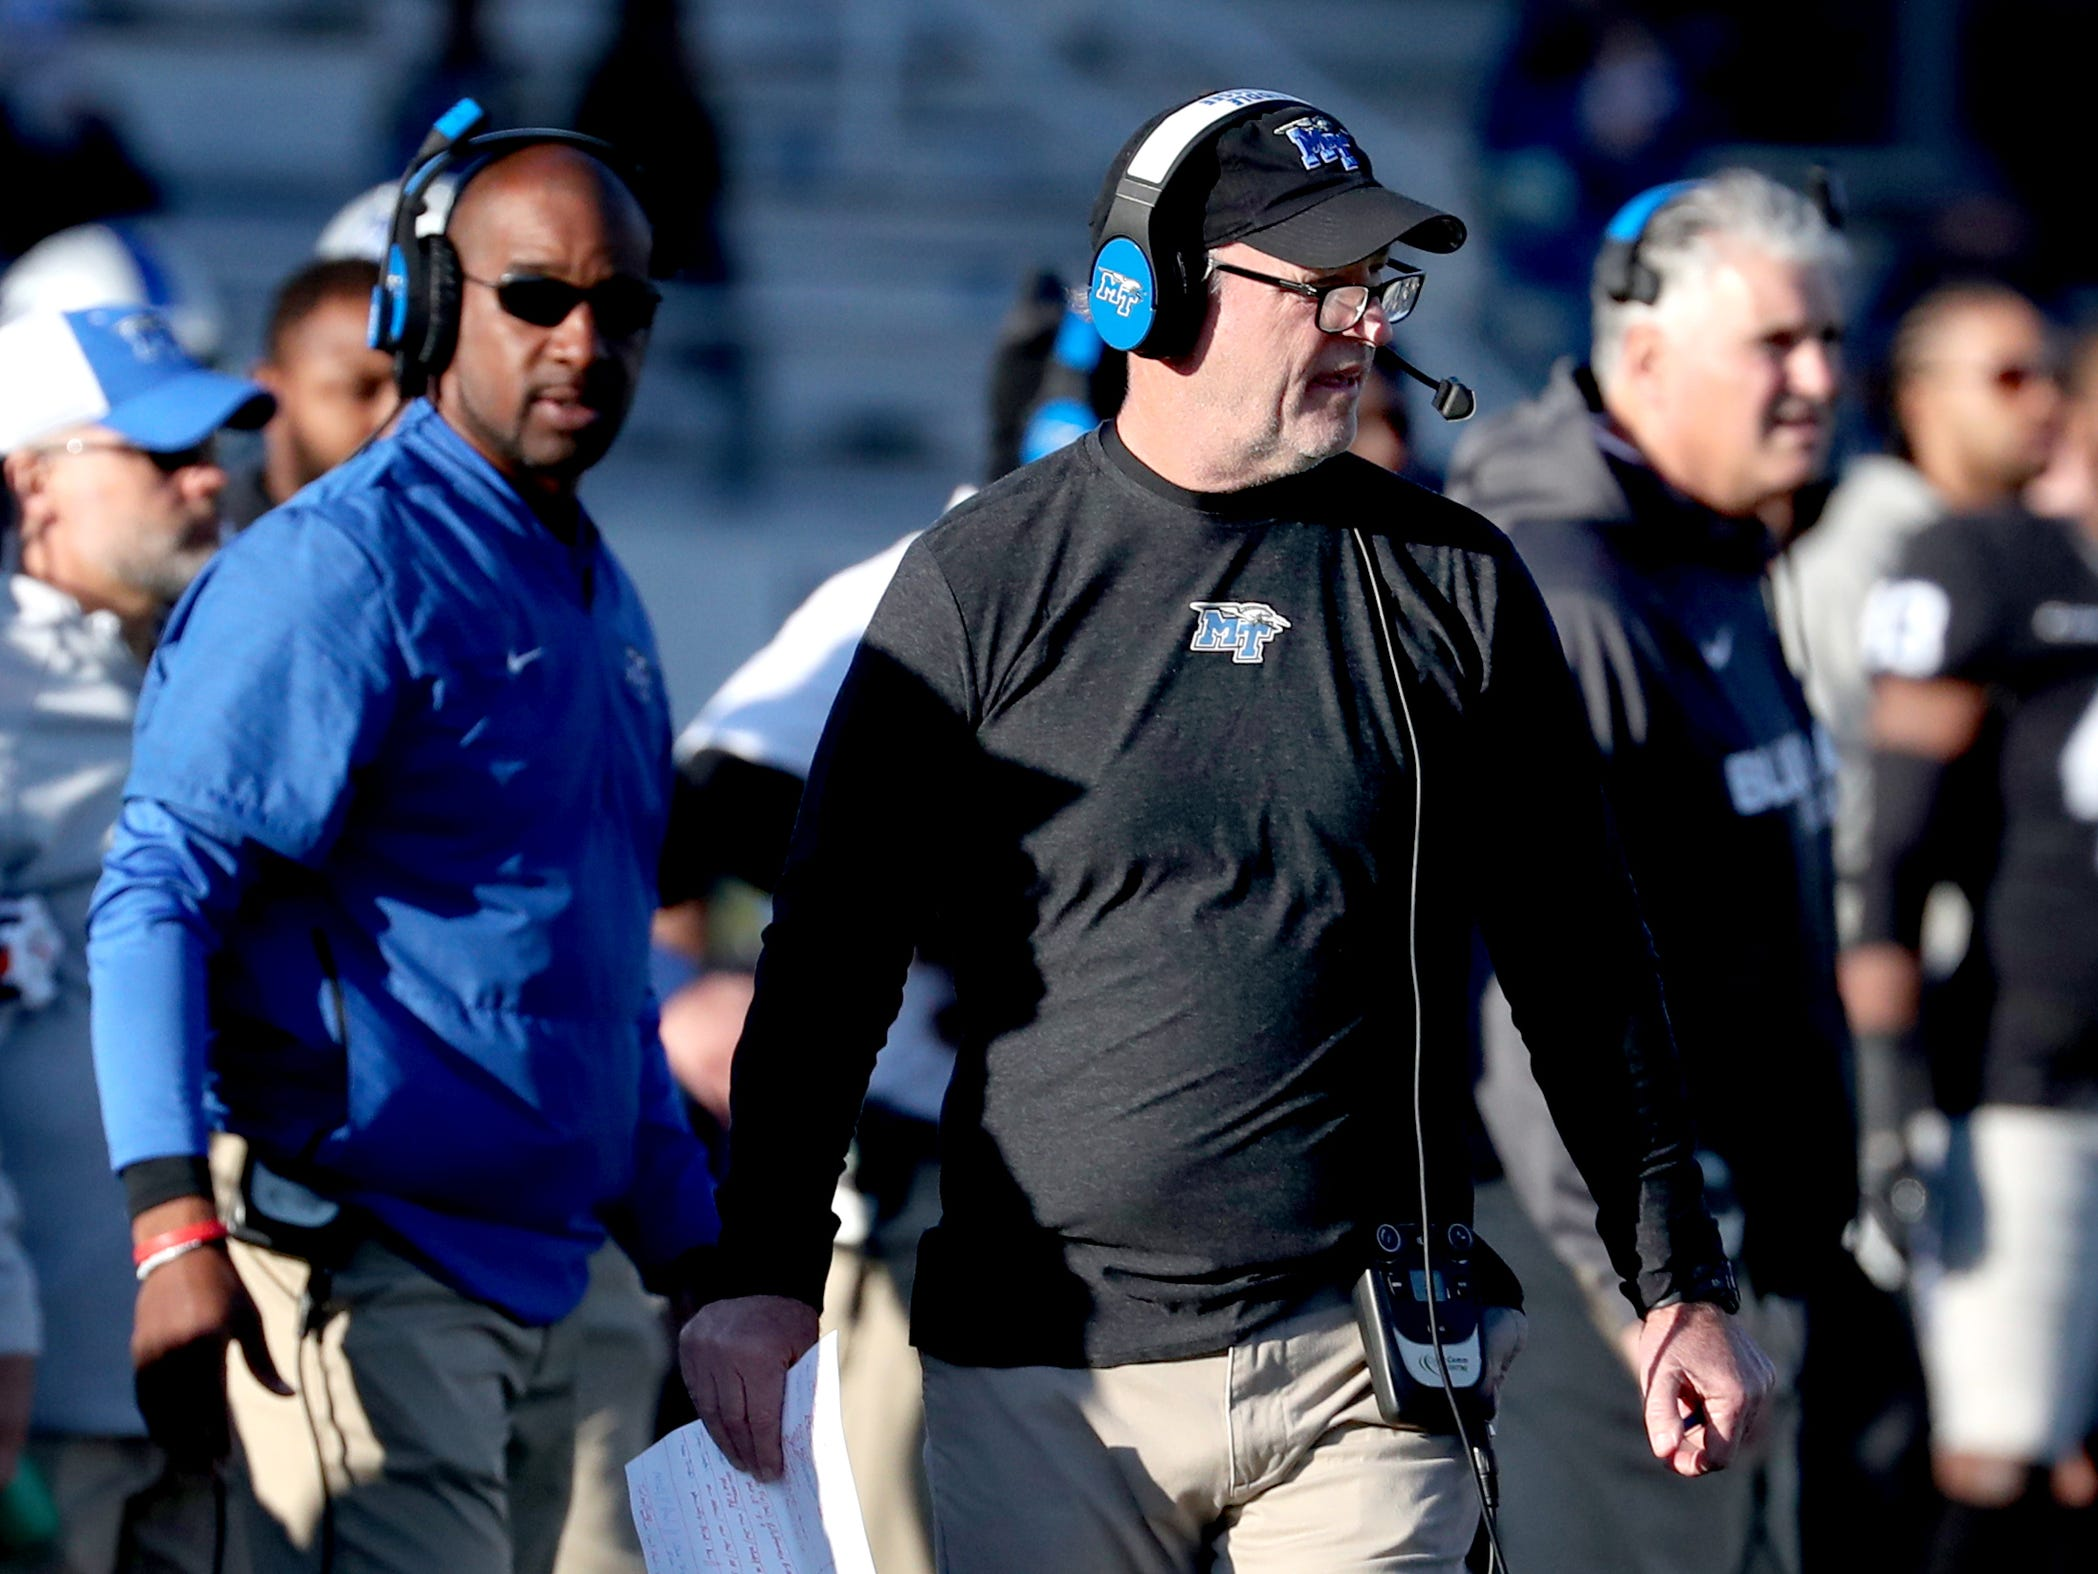 MTSU's offensive coordinator Tony Franklin on the sidelines during the game against UAB at MTSU on Saturday, Nov. 24, 2018.